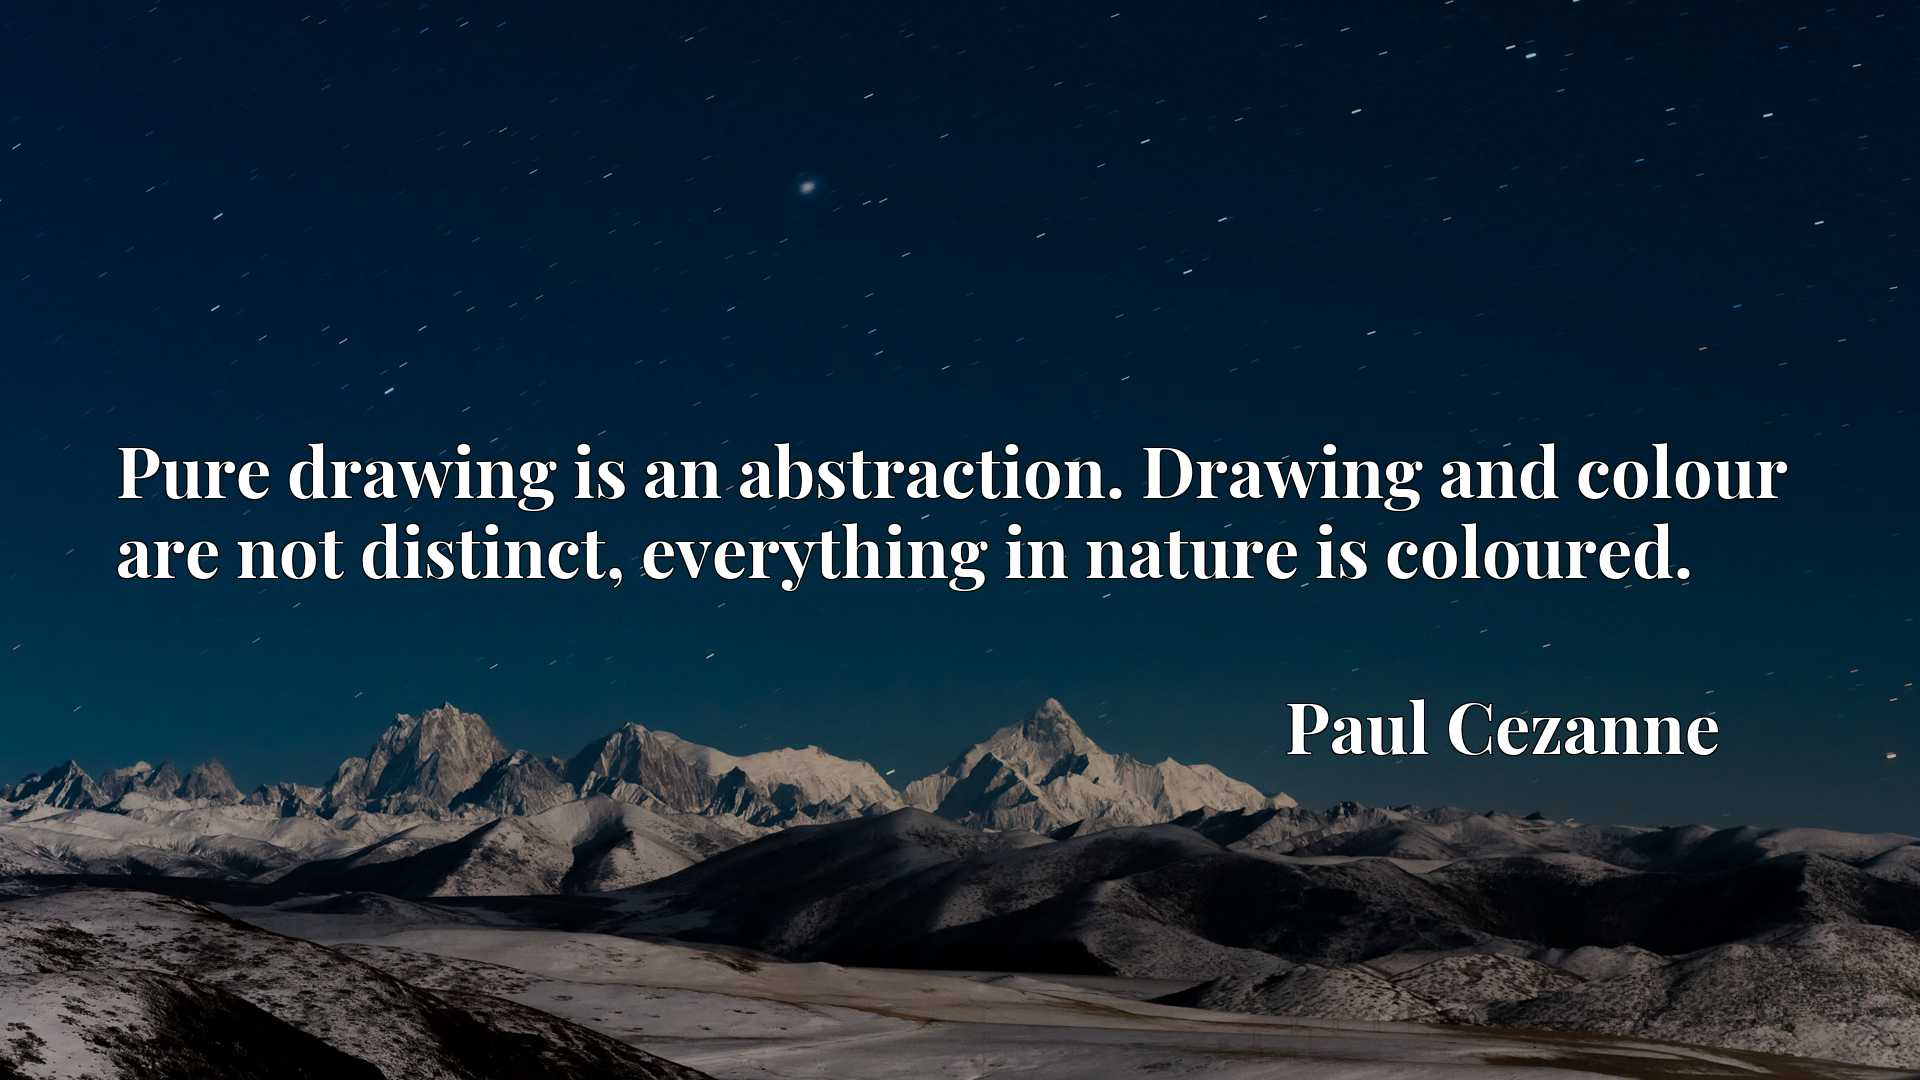 Pure drawing is an abstraction. Drawing and colour are not distinct, everything in nature is coloured.